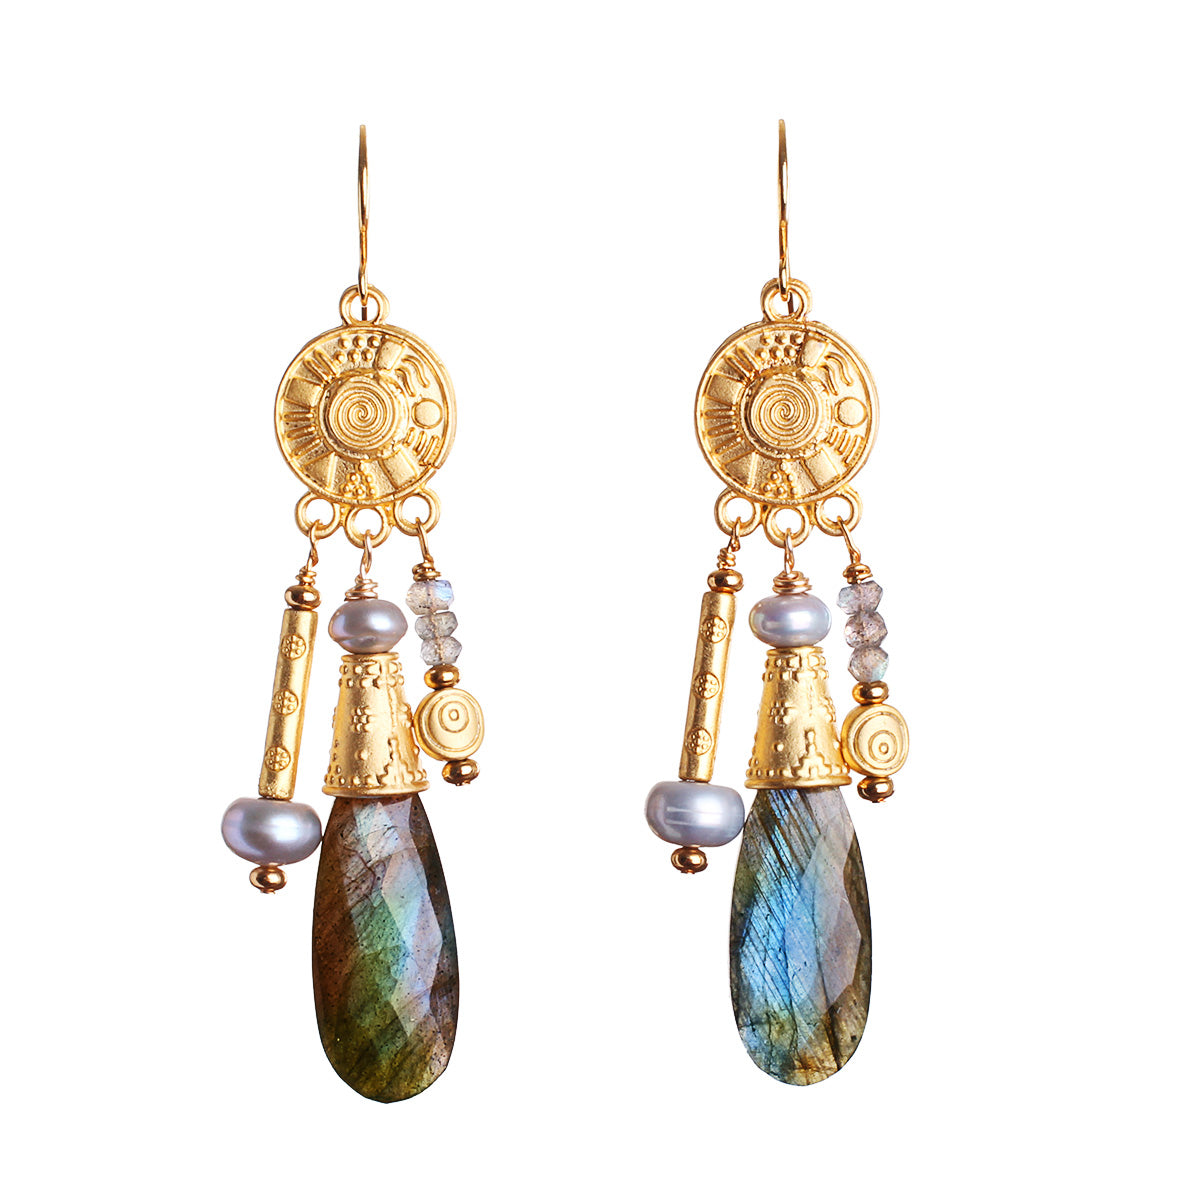 N°580 The Irresistible Impatience of Labradorite Statement Earrings